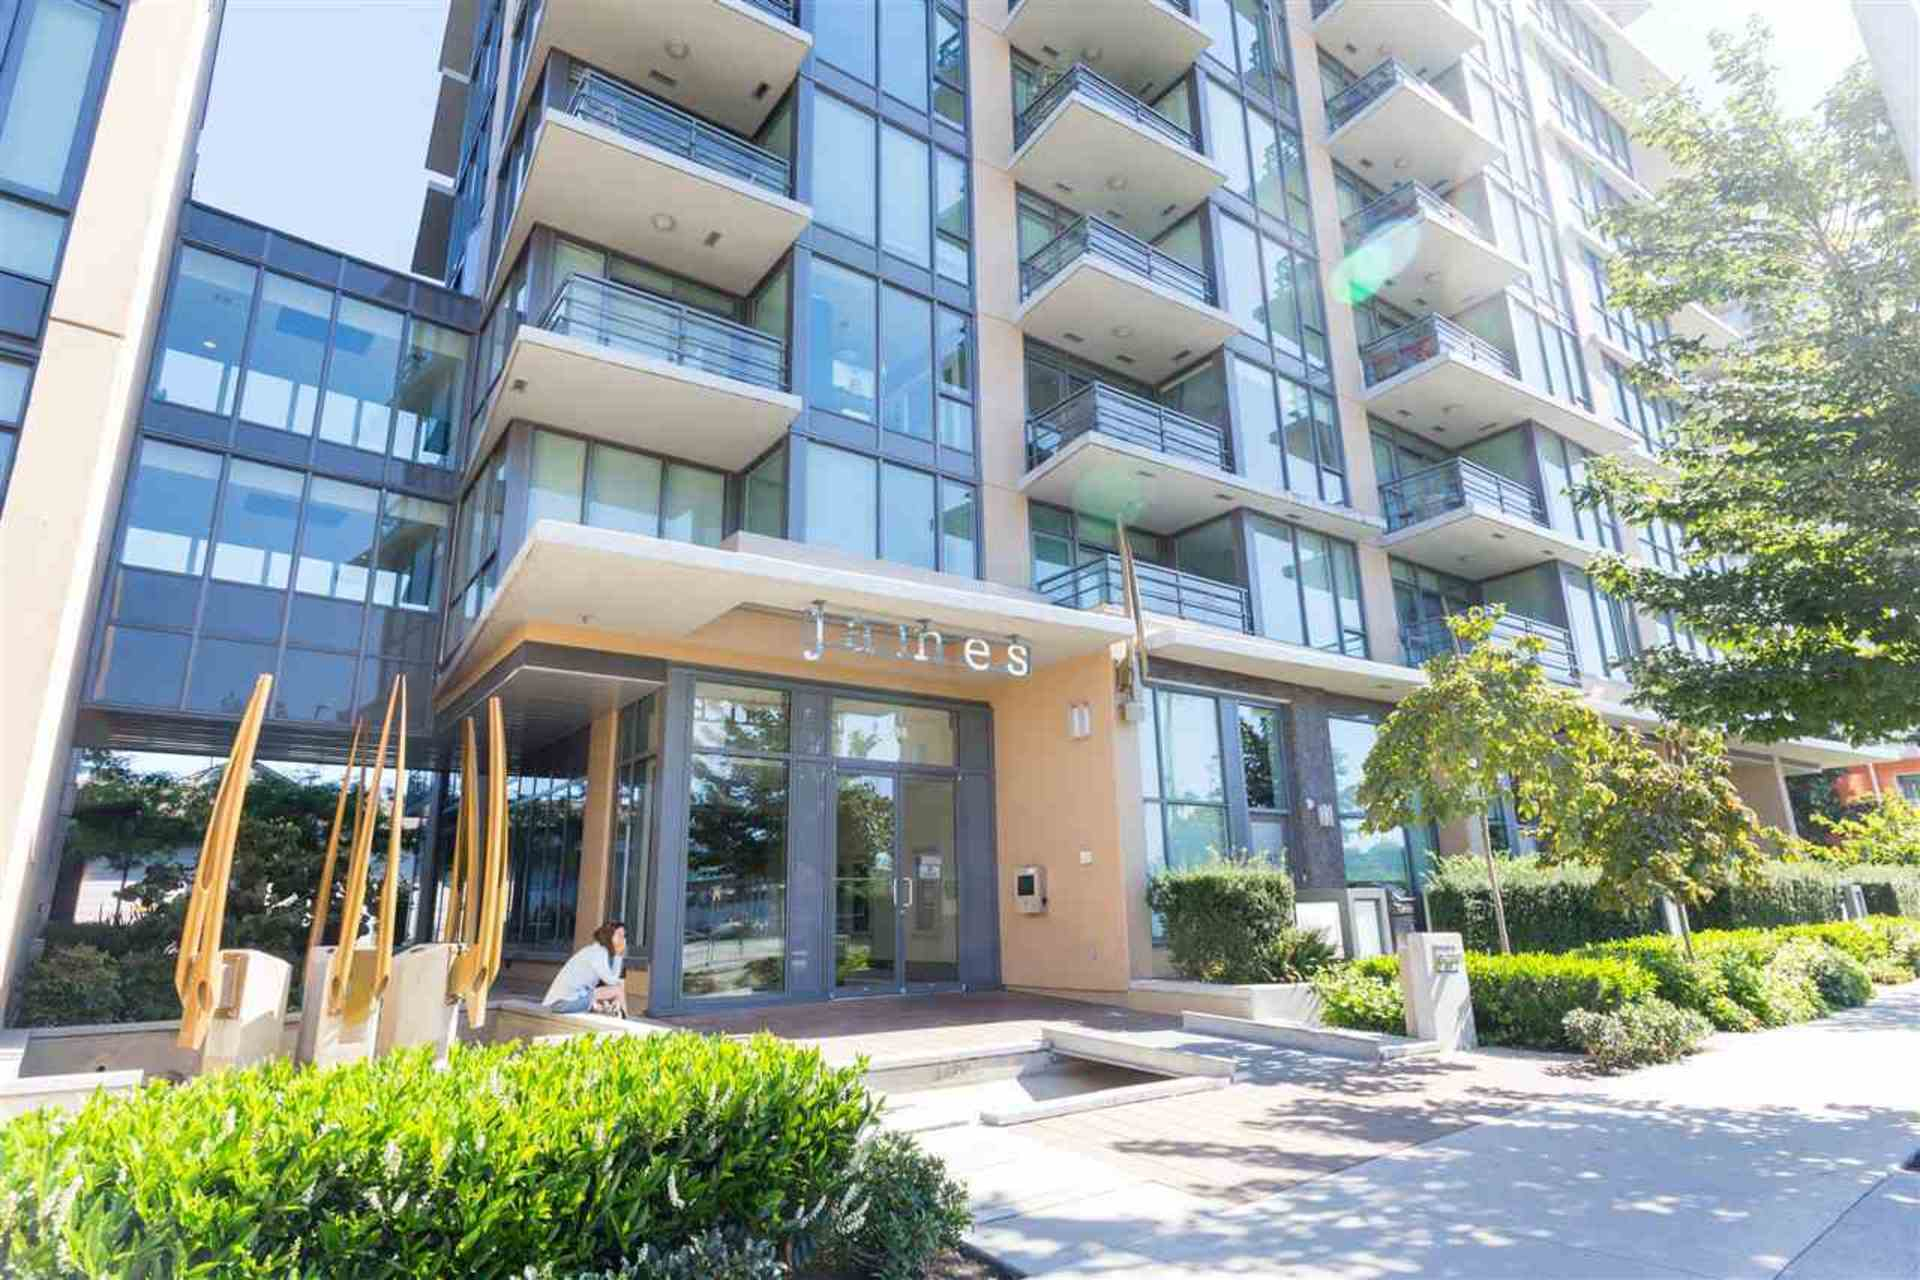 288-w-1-avenue-false-creek-vancouver-west-18 at 708 - 288 W 1 Avenue, False Creek, Vancouver West